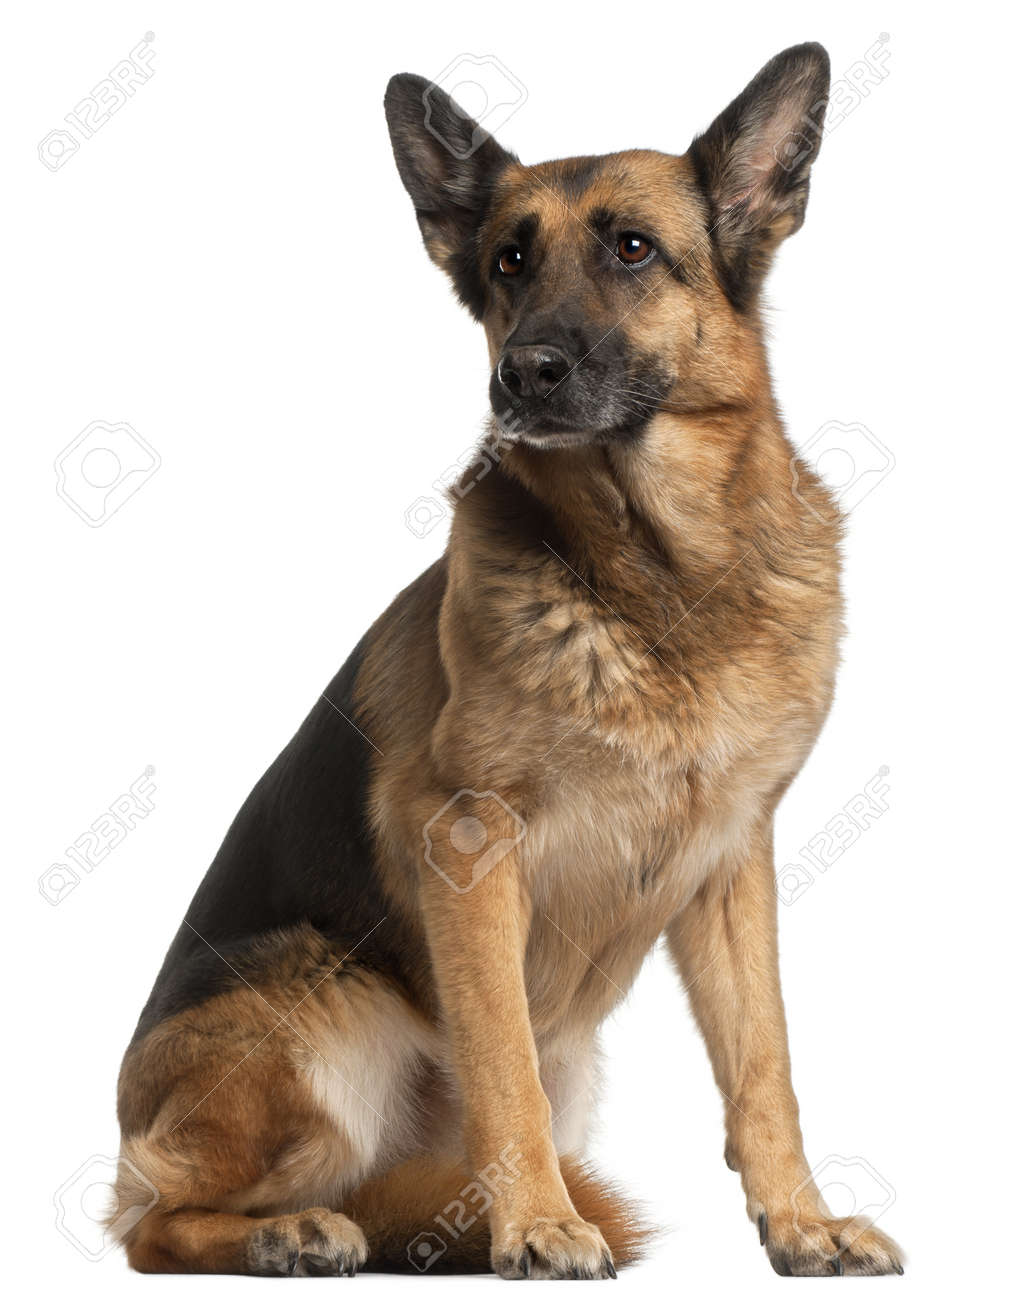 German Shepherd Dog 10 Years Old Sitting In Front Of White Stock Photo Picture And Royalty Free Image Image 9750337